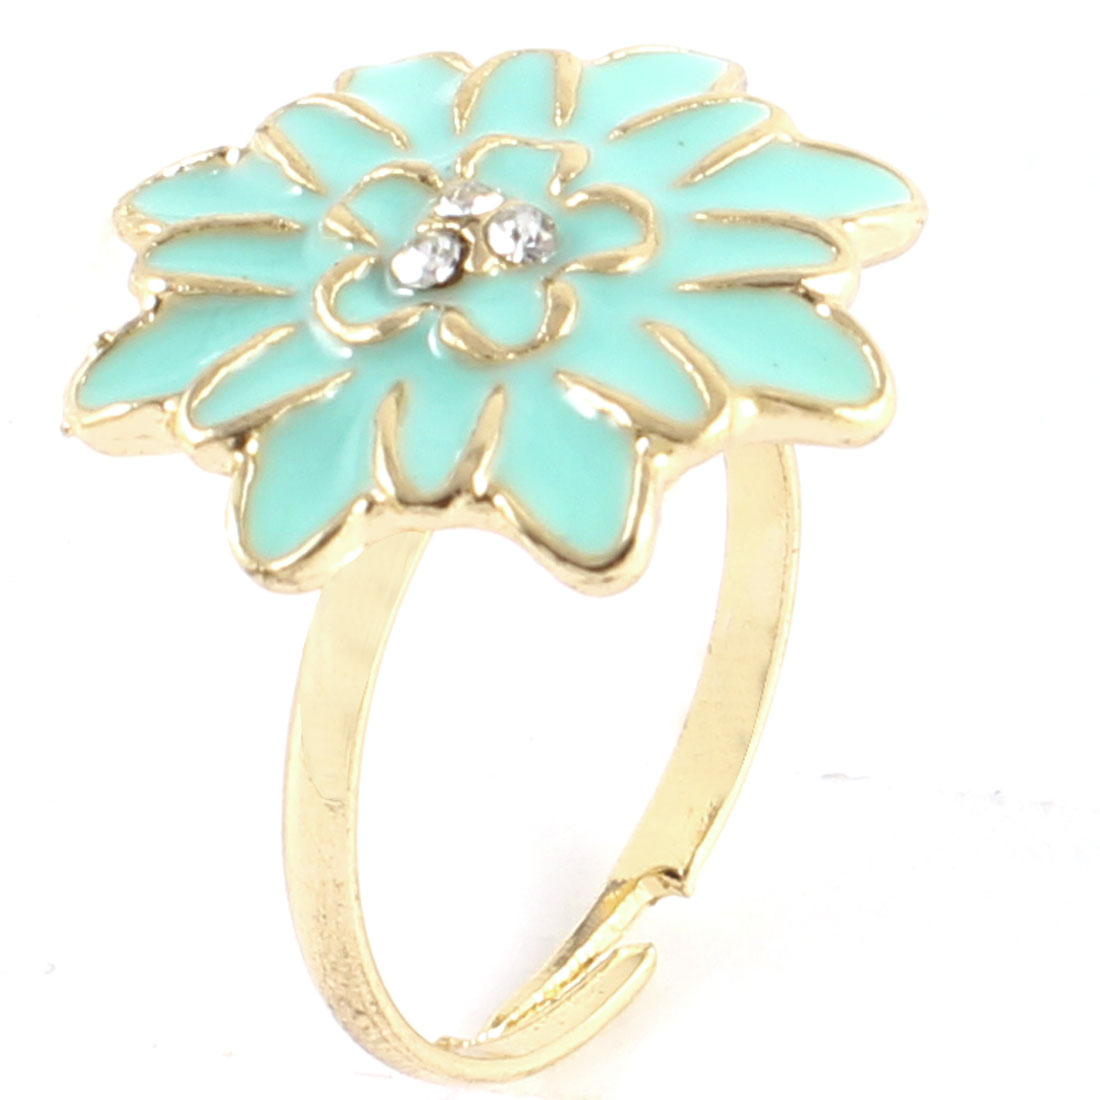 Ladies Rhinestone Inlaid Aqua Daisy Flower Decor Gold Tone Metal Finger Ring